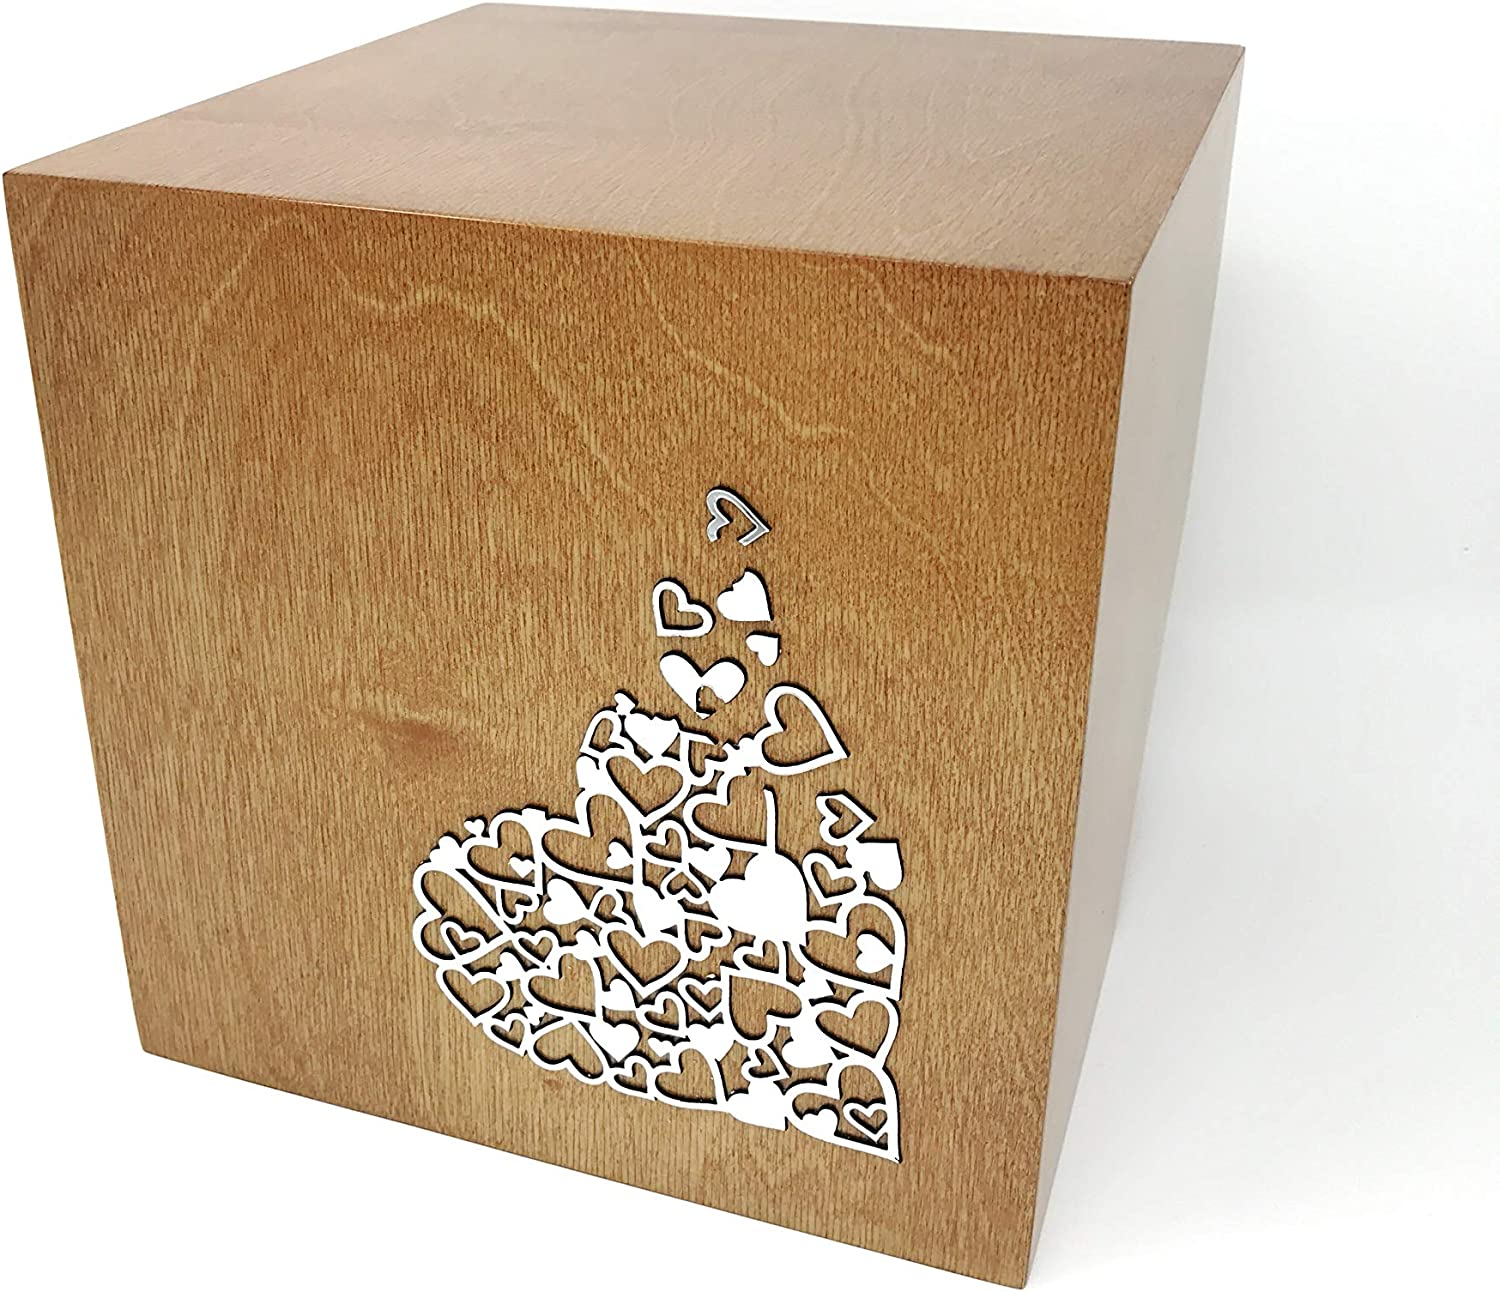 Tilted Cube Cremation Urn for Ashes Modern Urn Memorial Funeral Container Design Urn